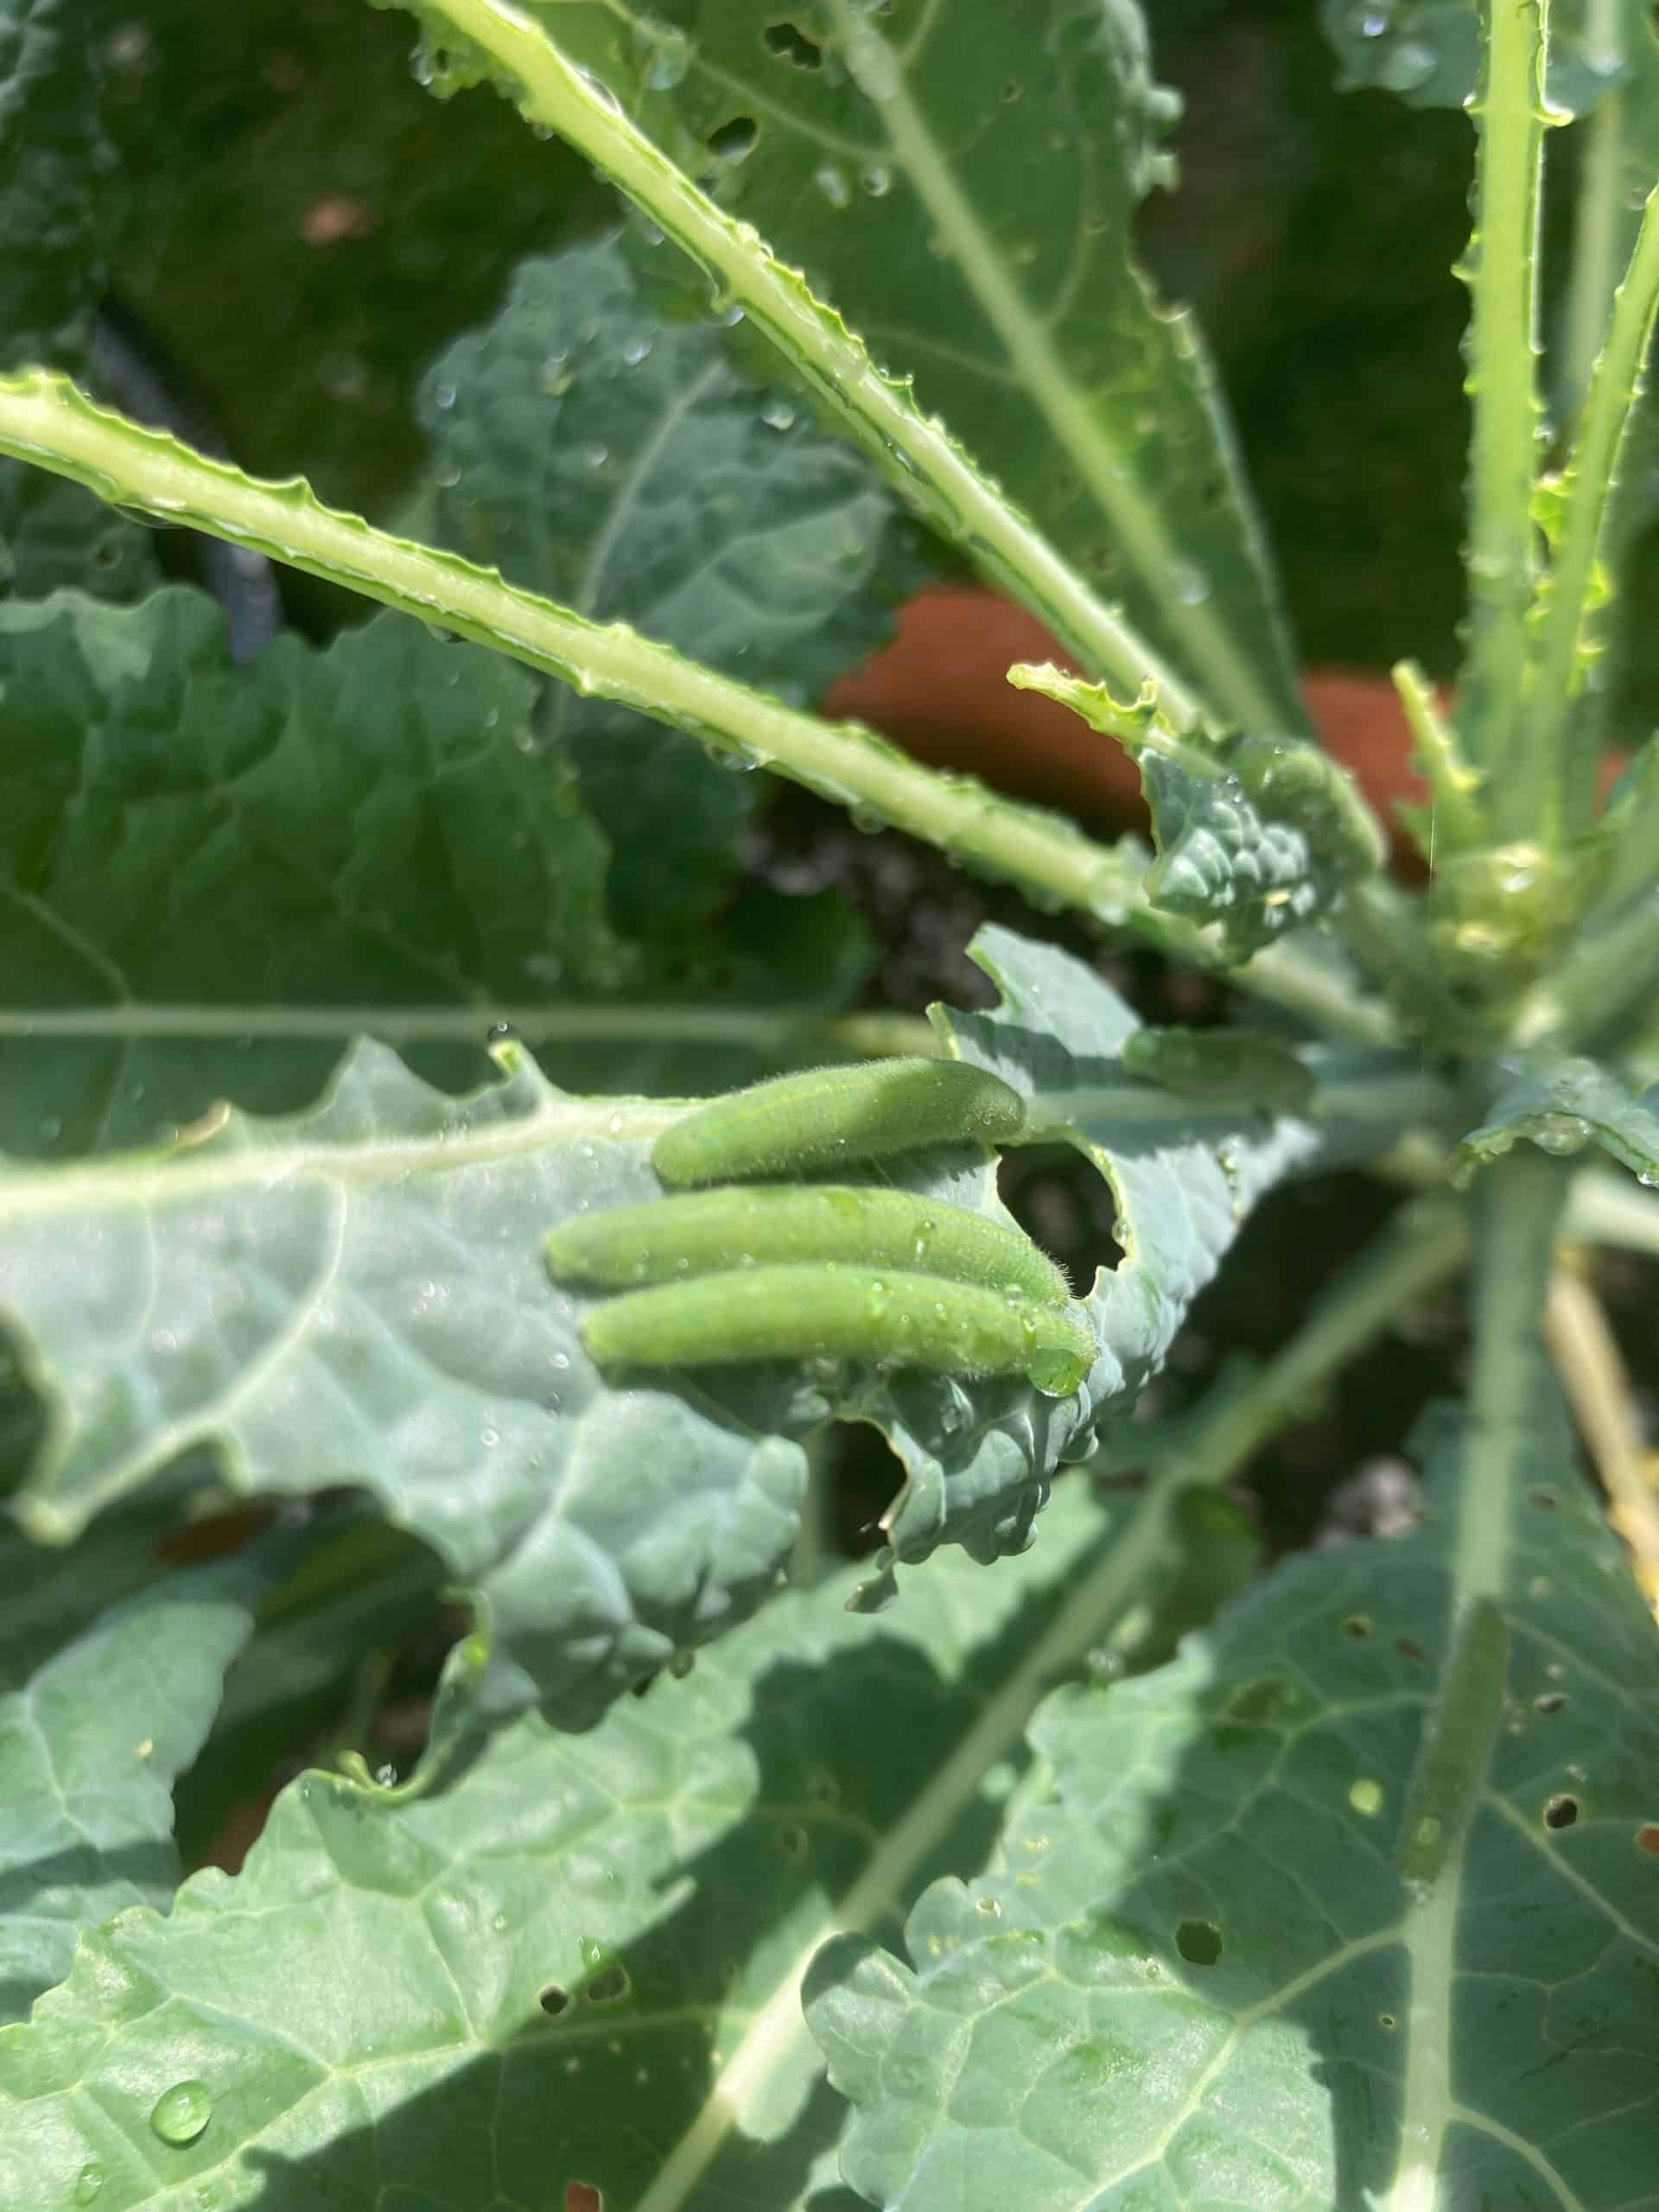 Cabbage worms on kale leaves